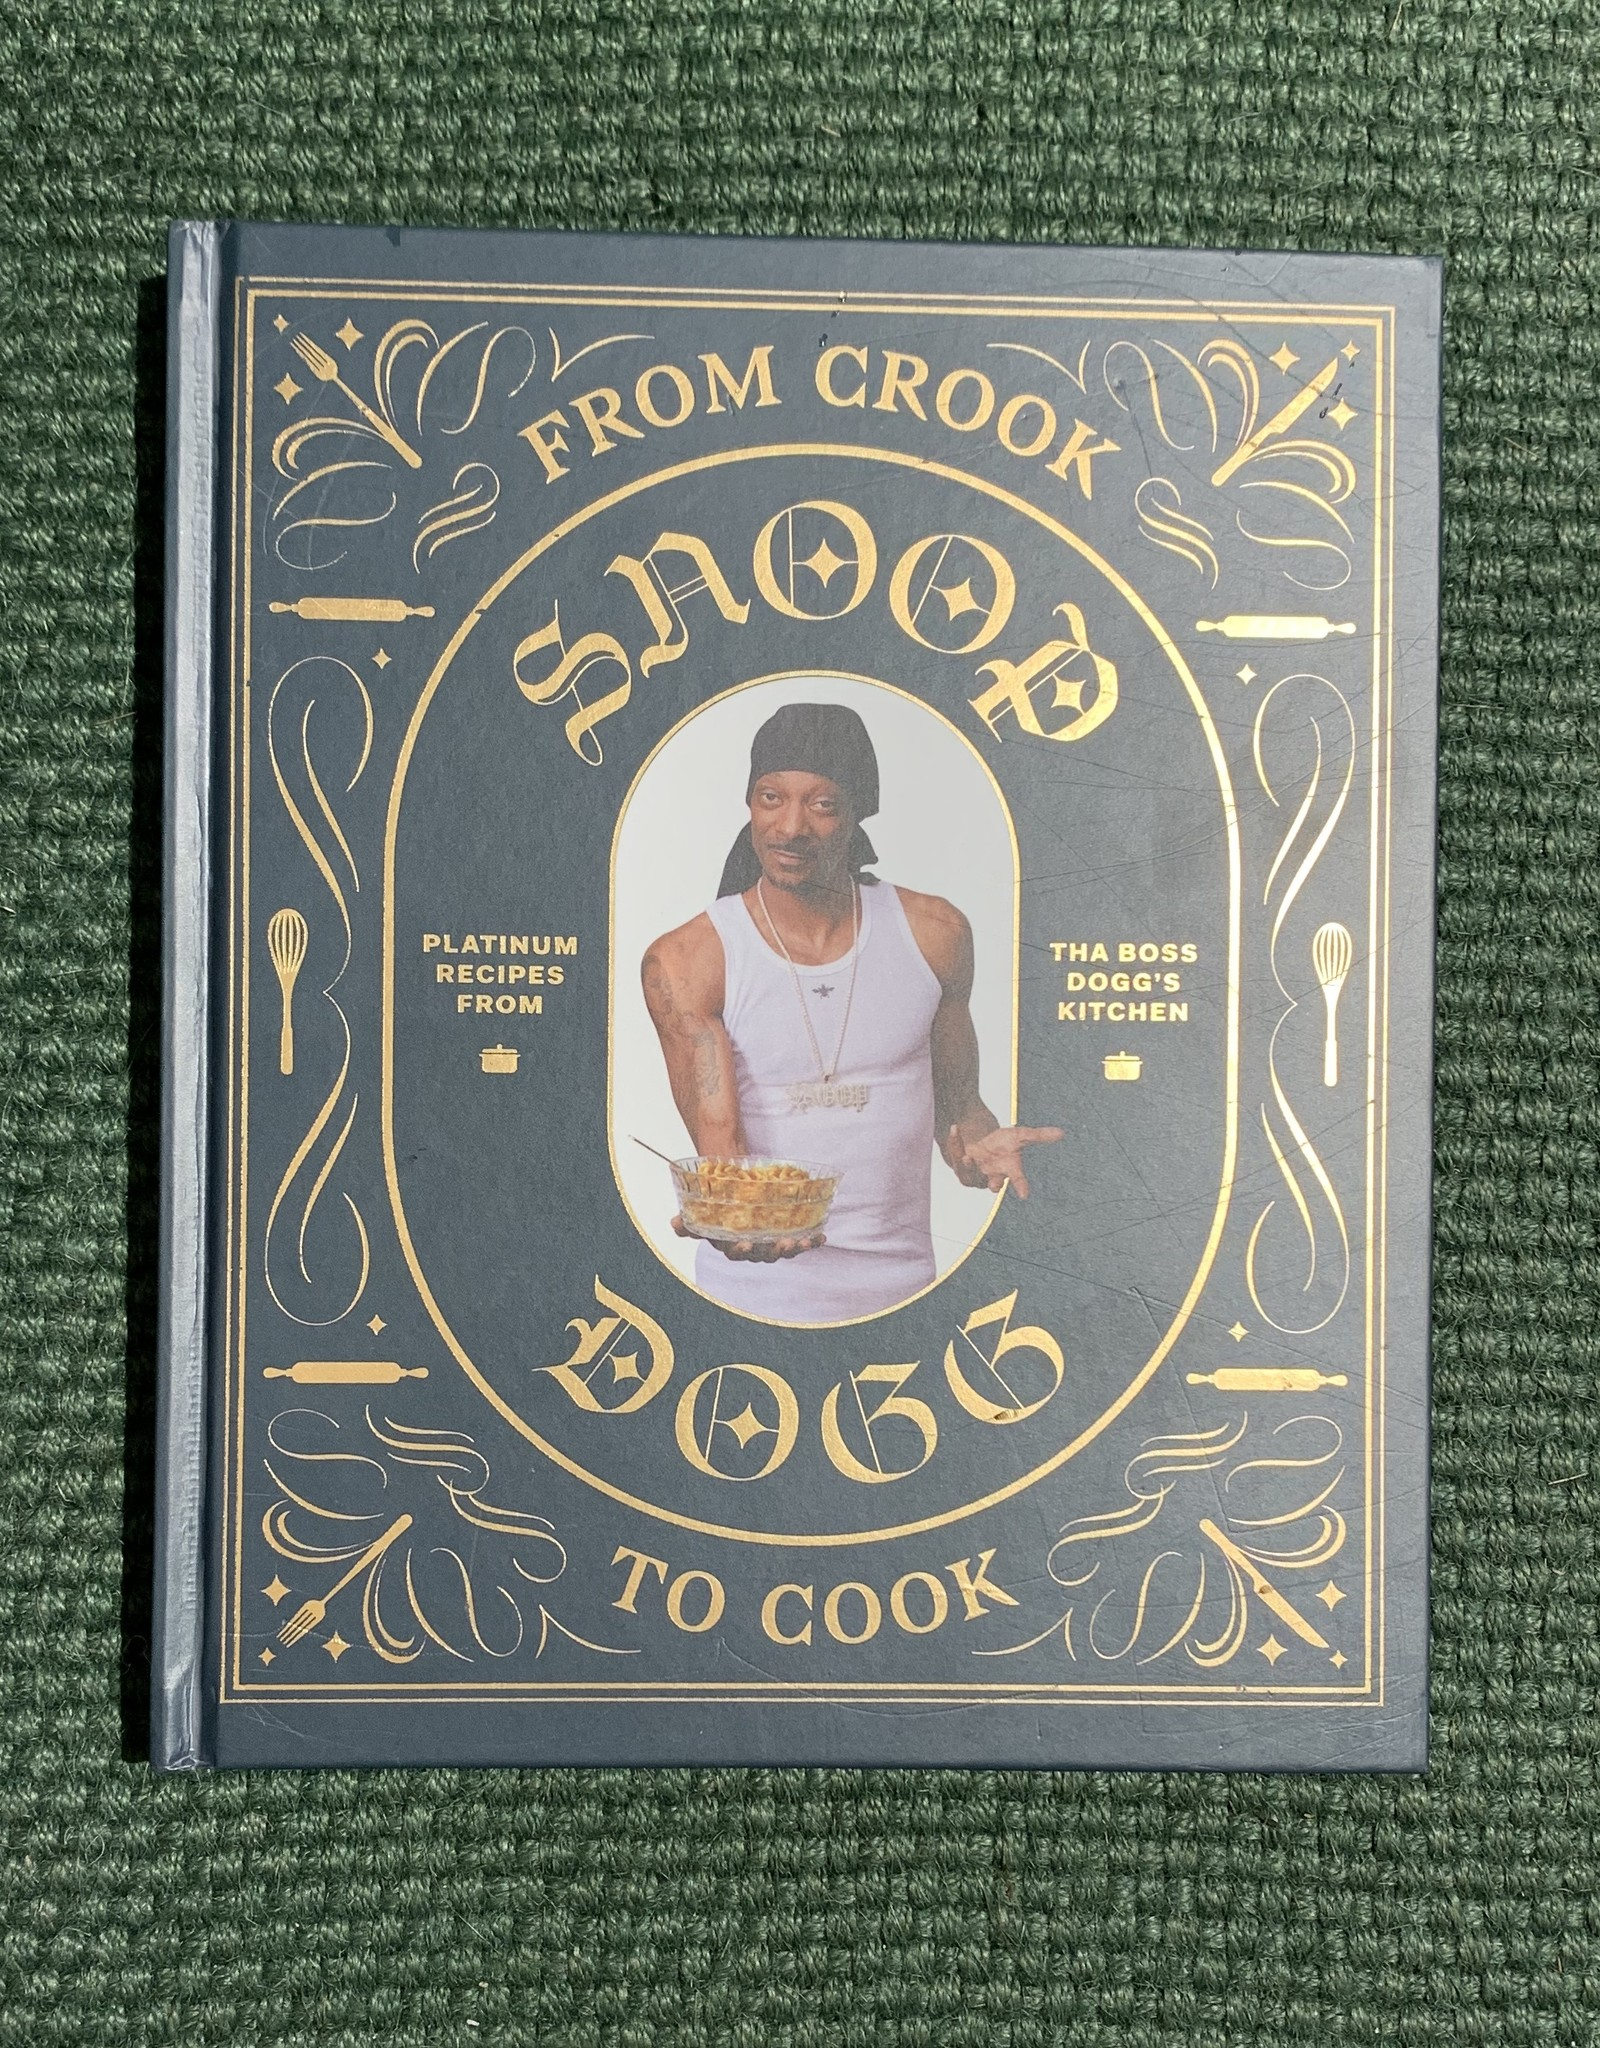 DAM DAM-From Crook to Cook